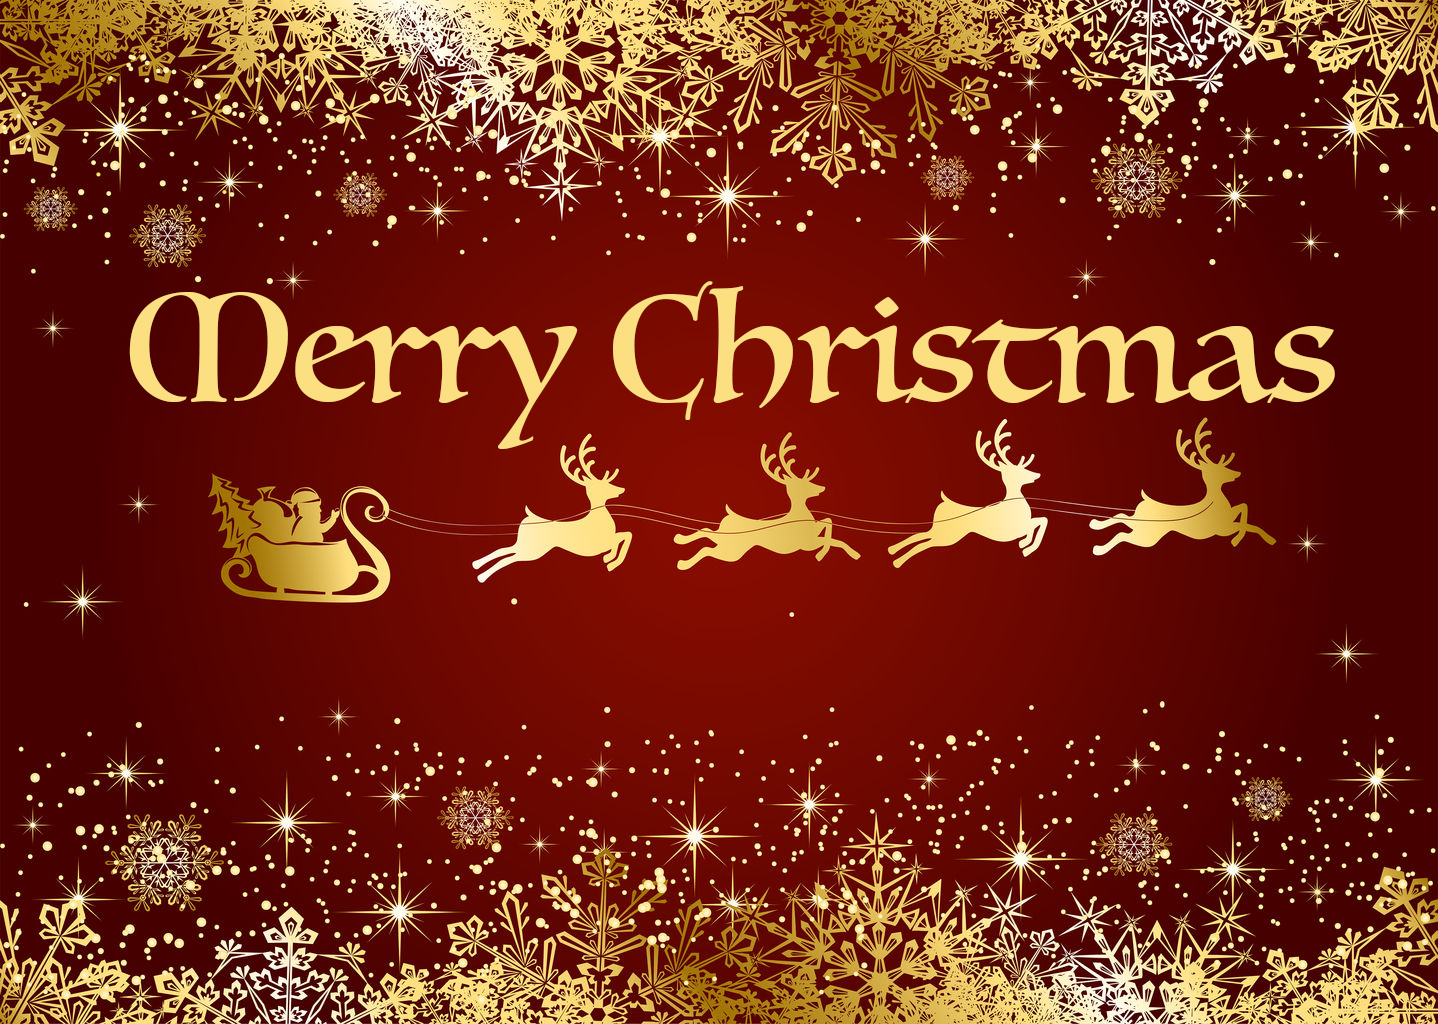 Merry Christmas Photo Offer